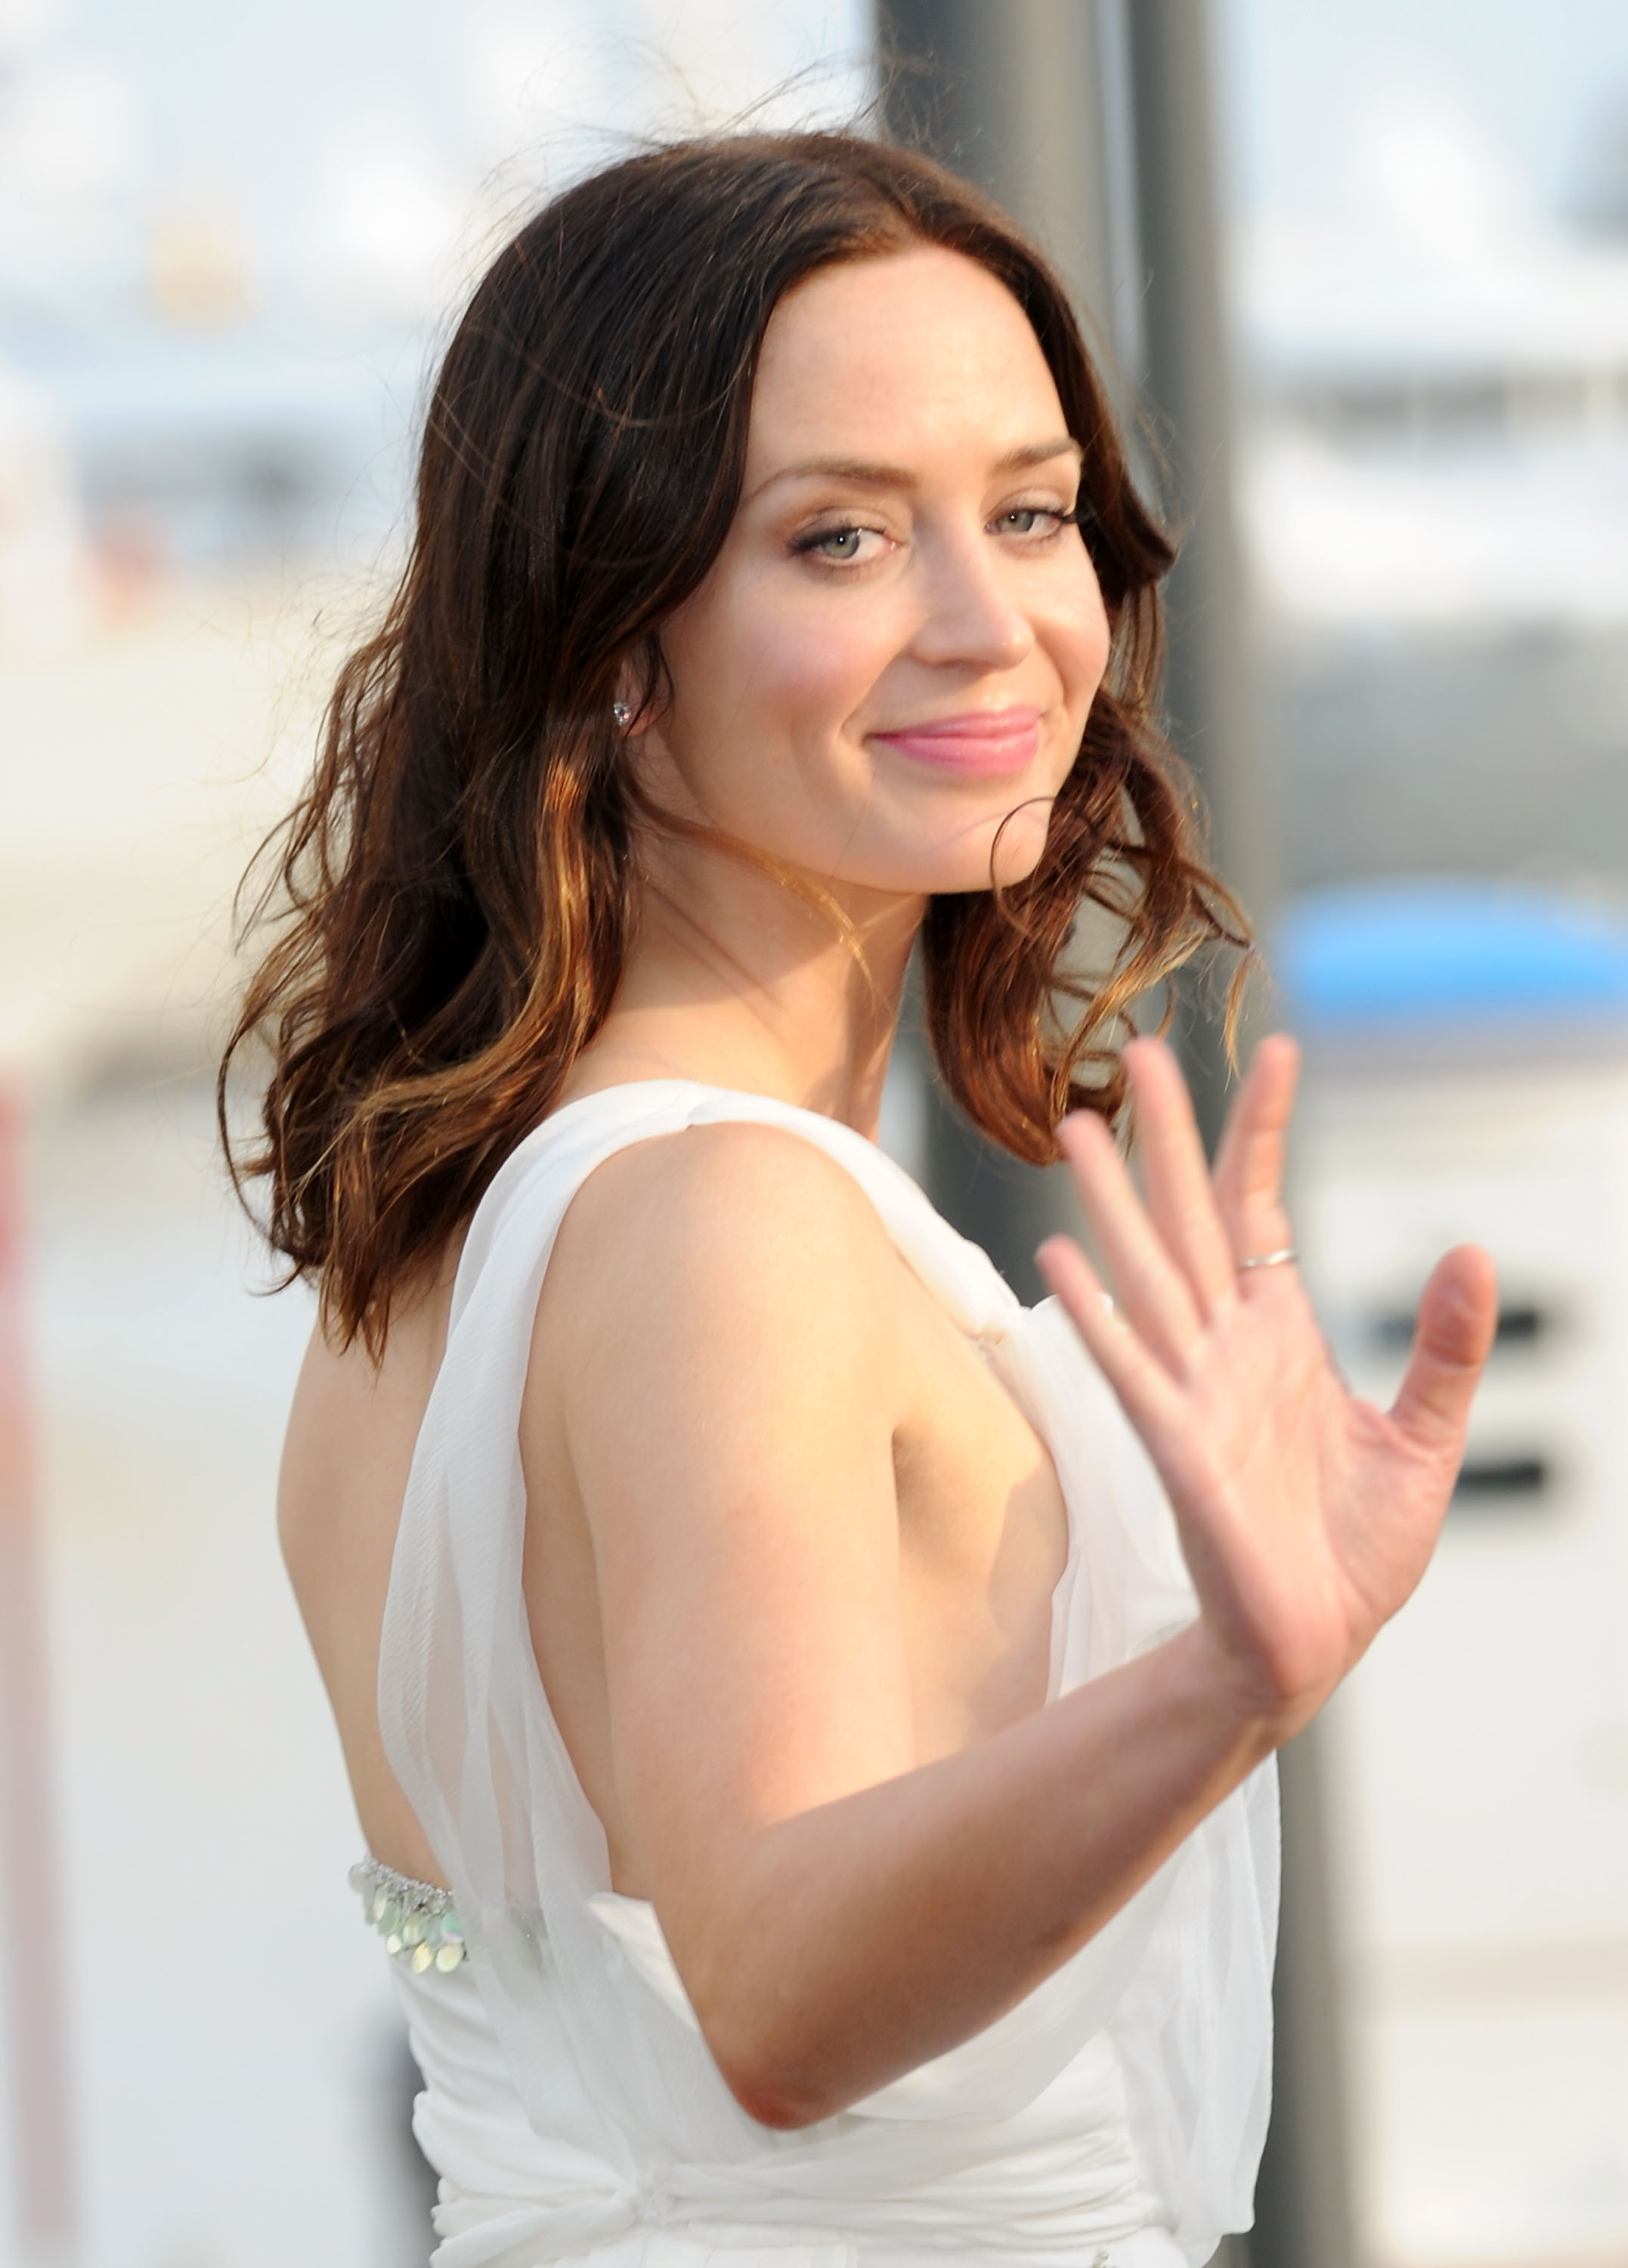 Emily Blunt 2010 : emily-blunt-at-fair-game-event-63rd-annual-cannes-film-festival-09